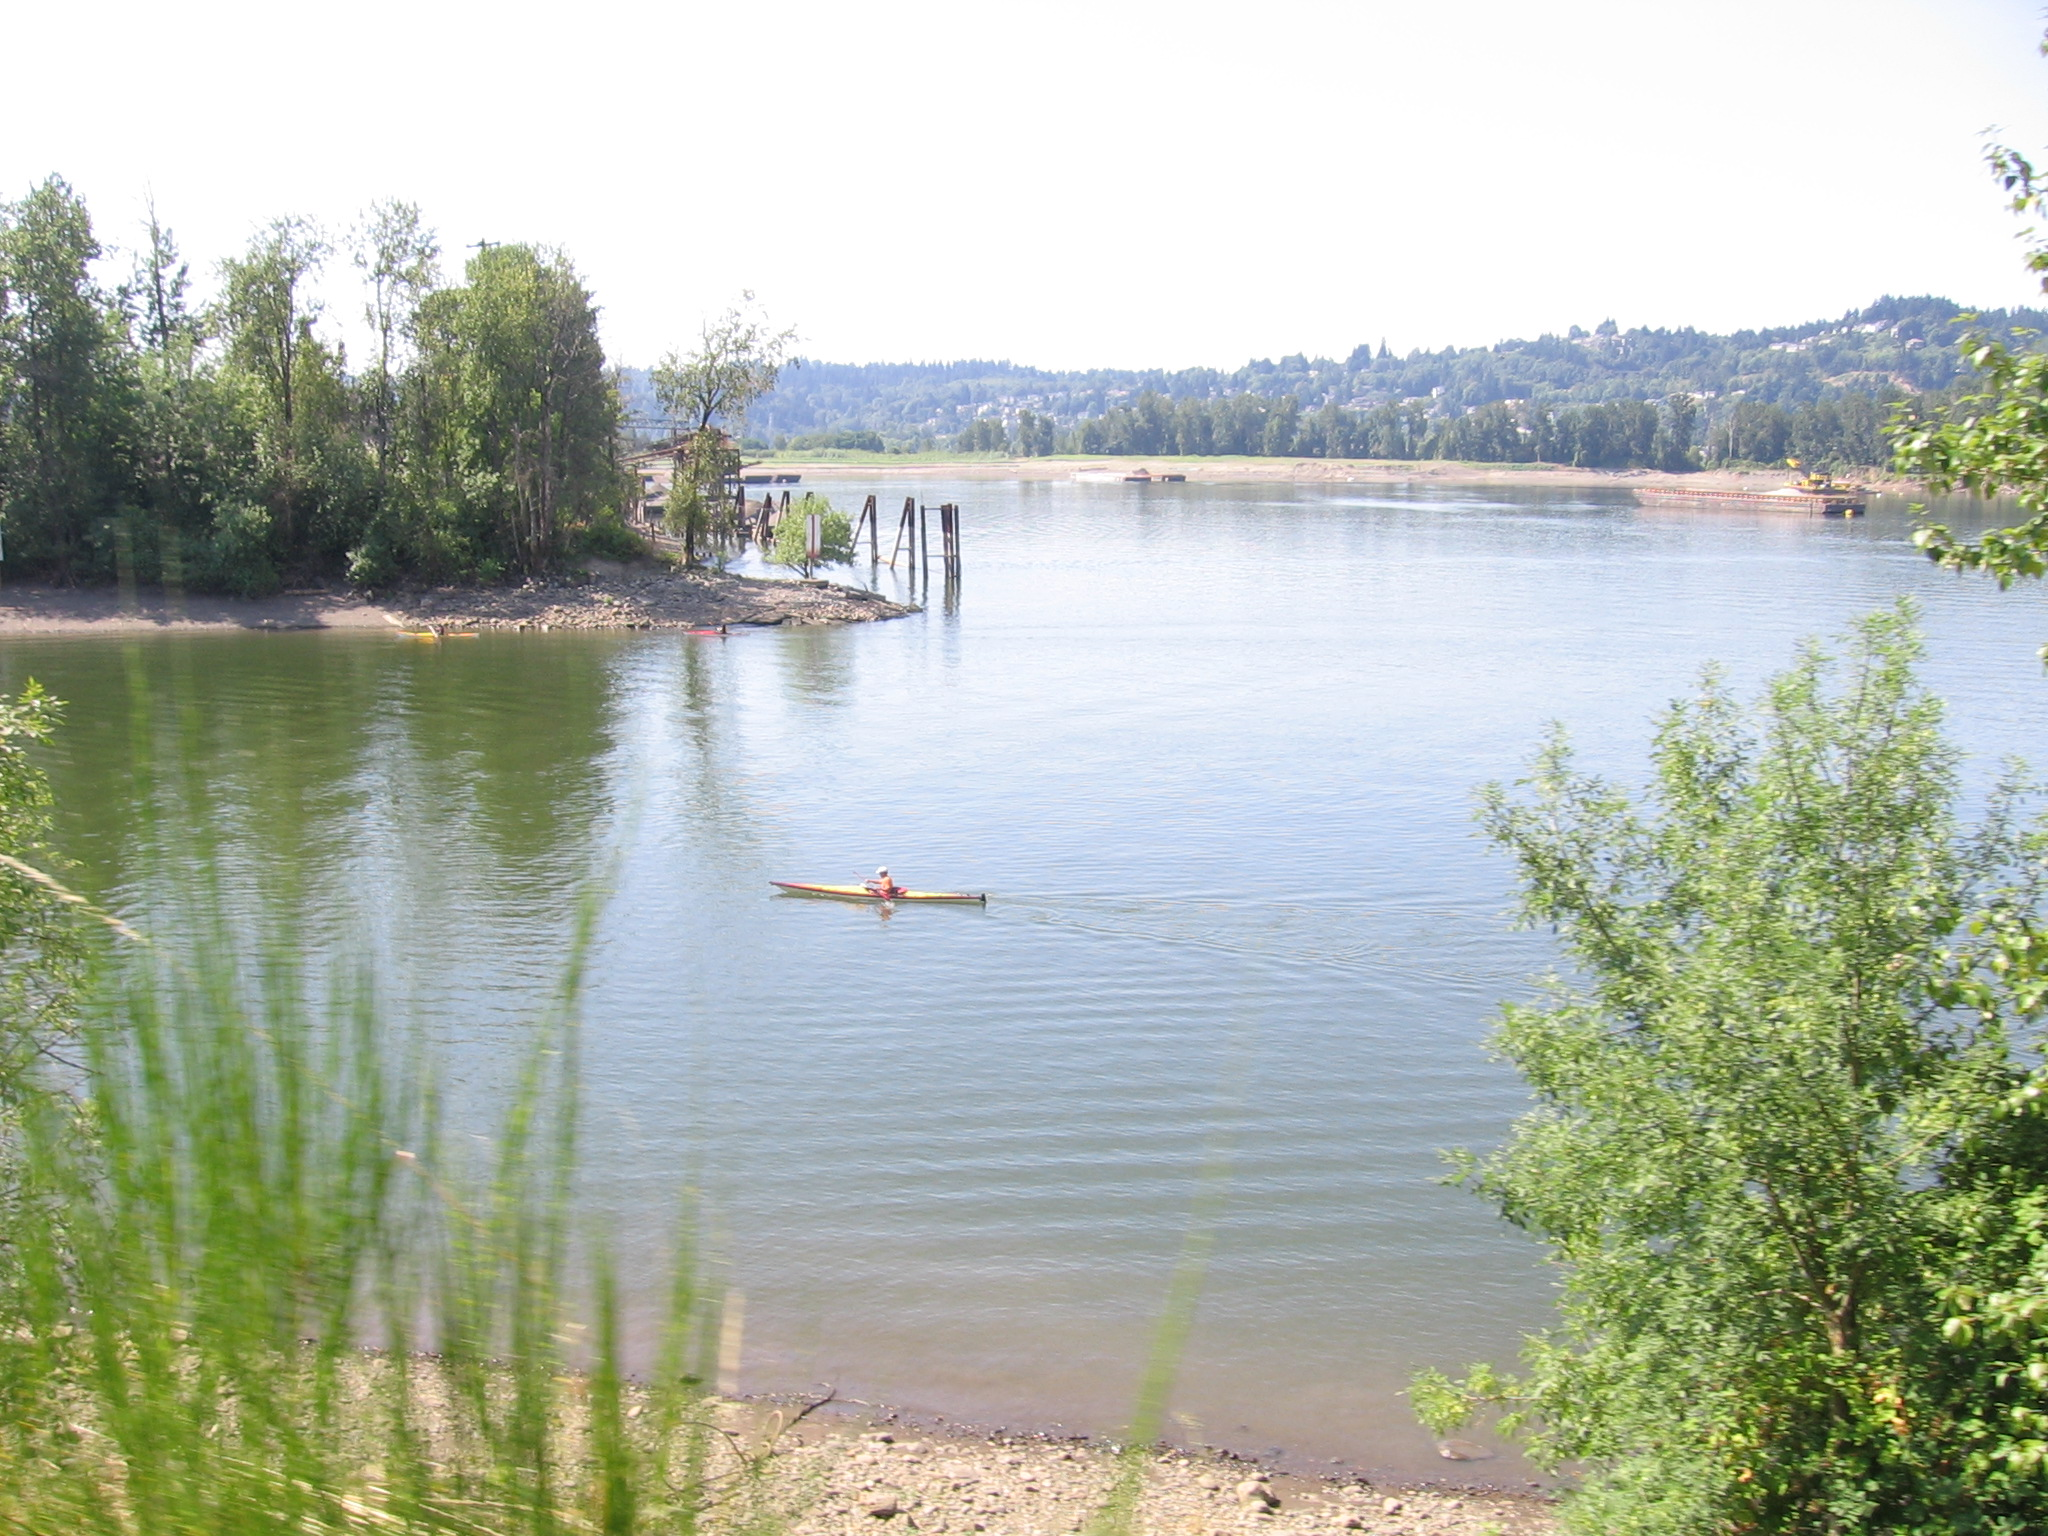 Springwater Corridor, along Willamette R, 5, Aug 21 2011